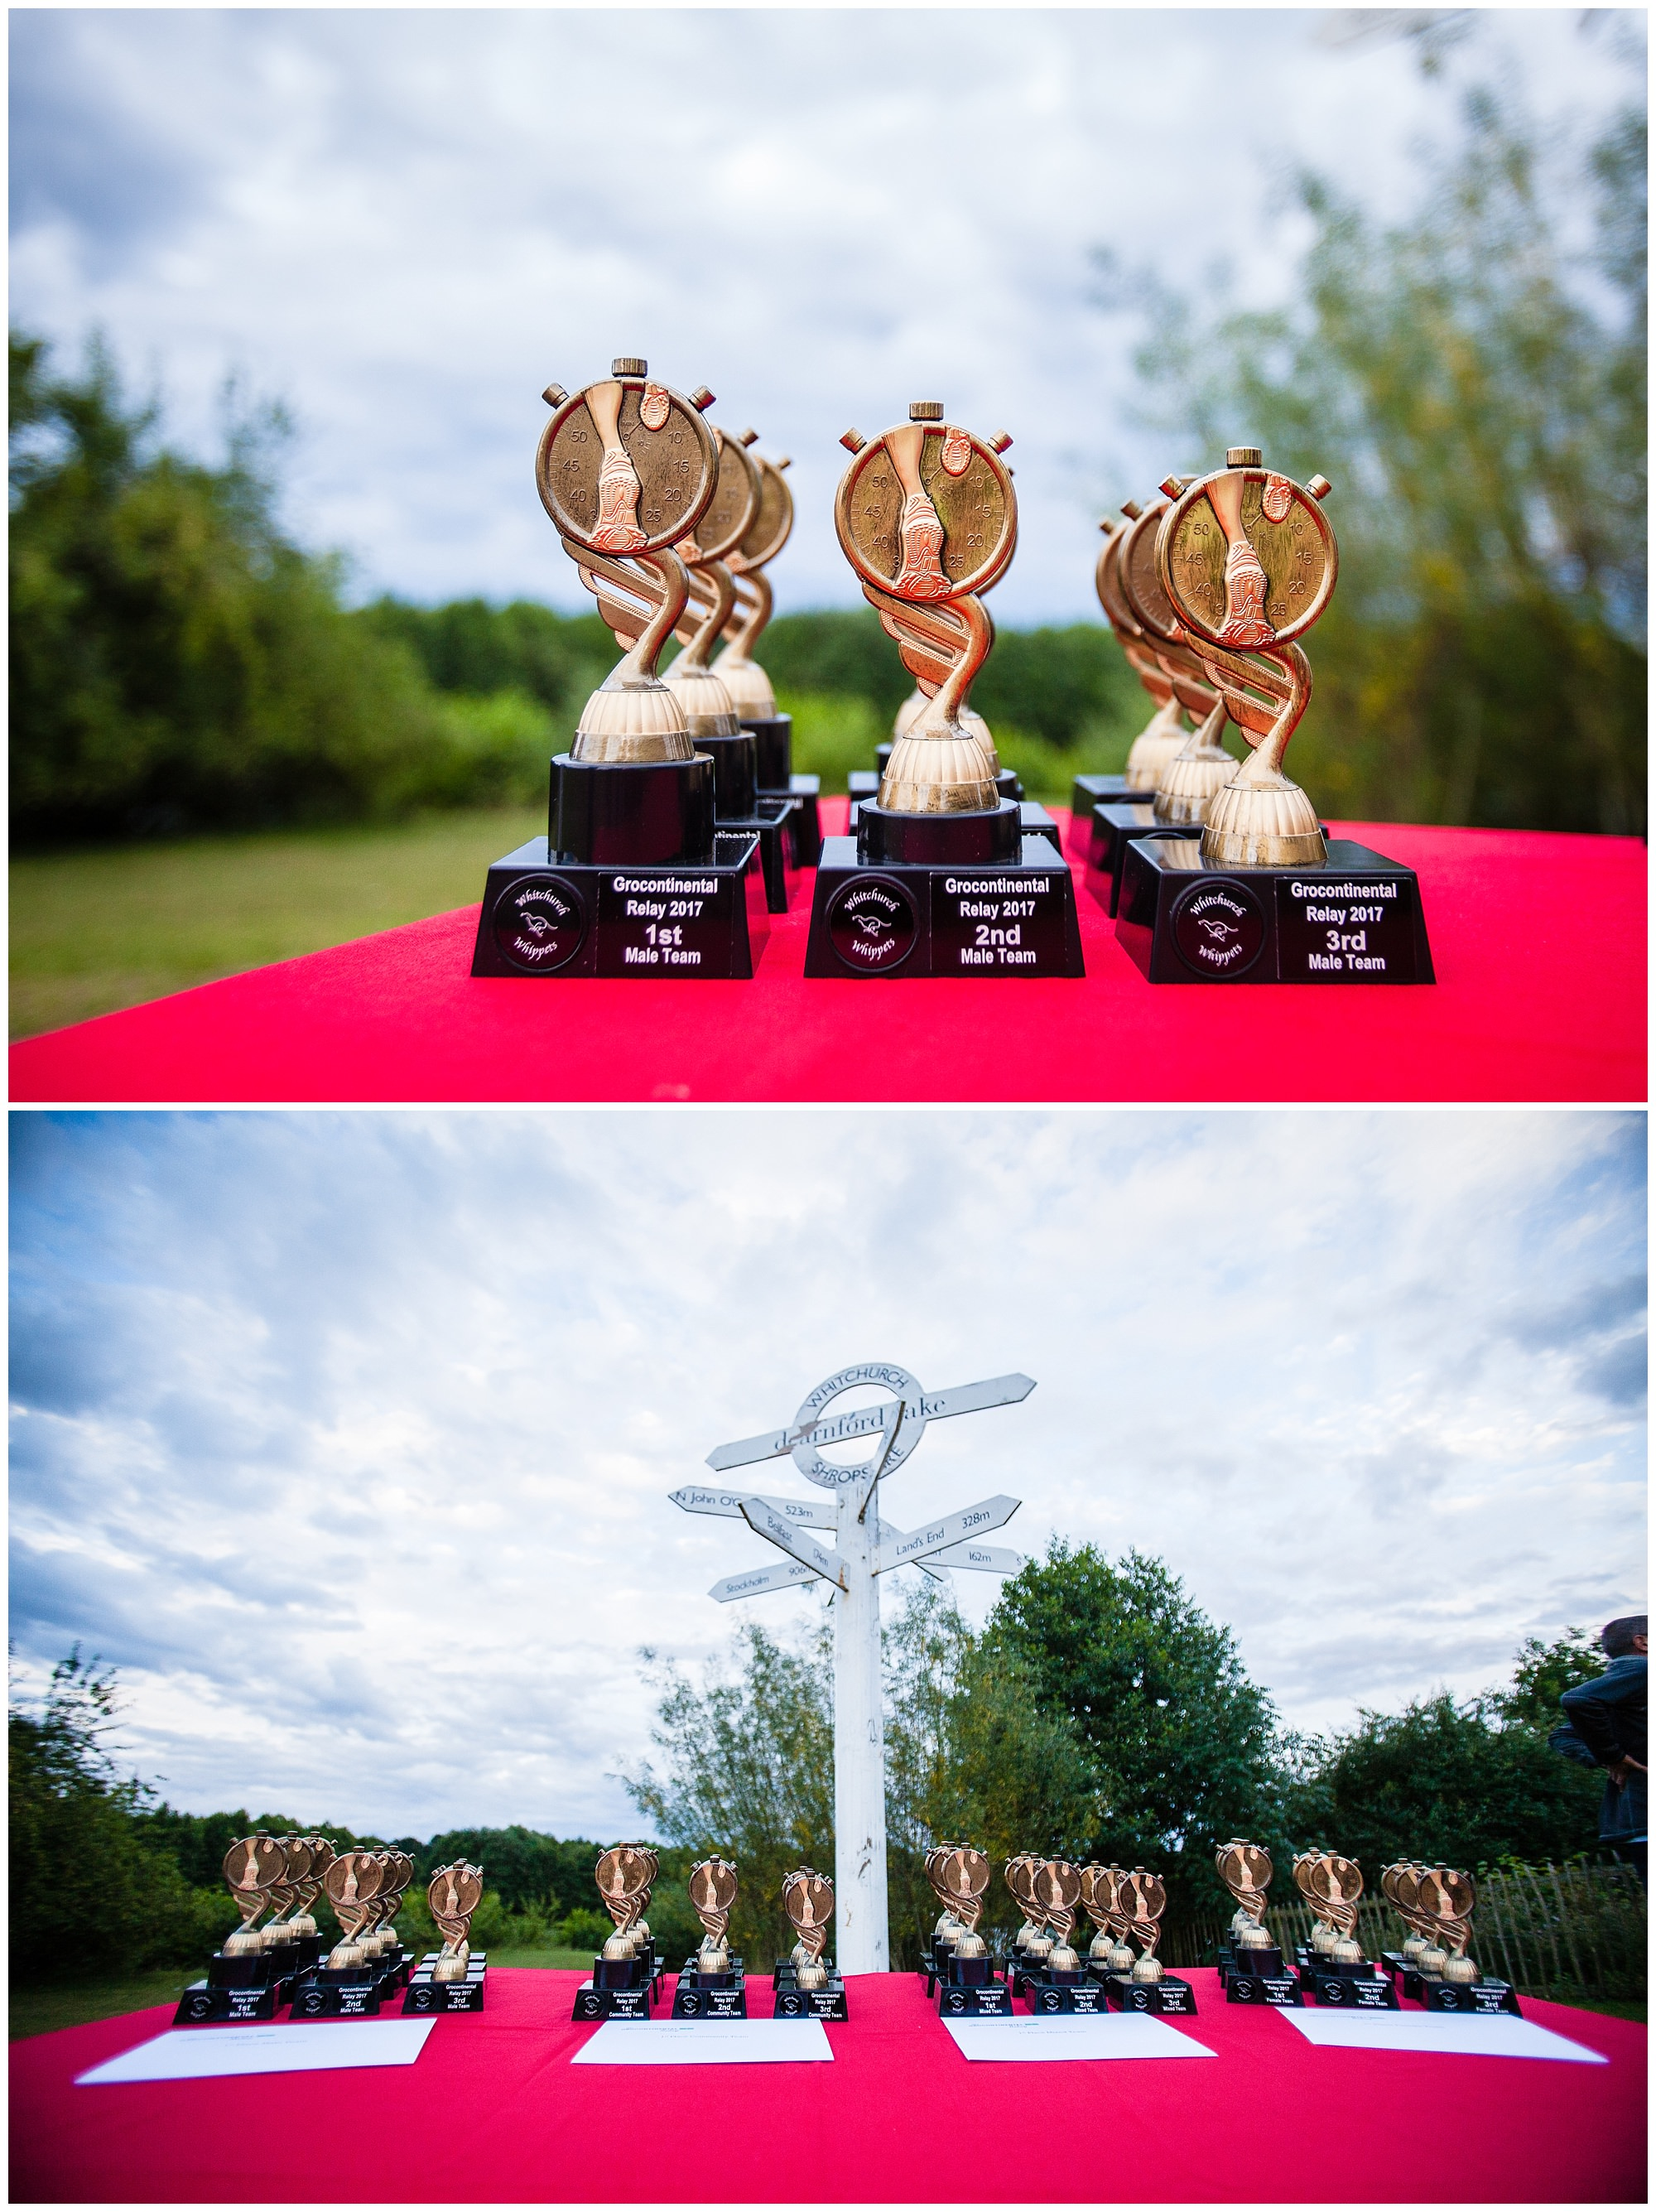 trophies ready for alderford lake relay presentation